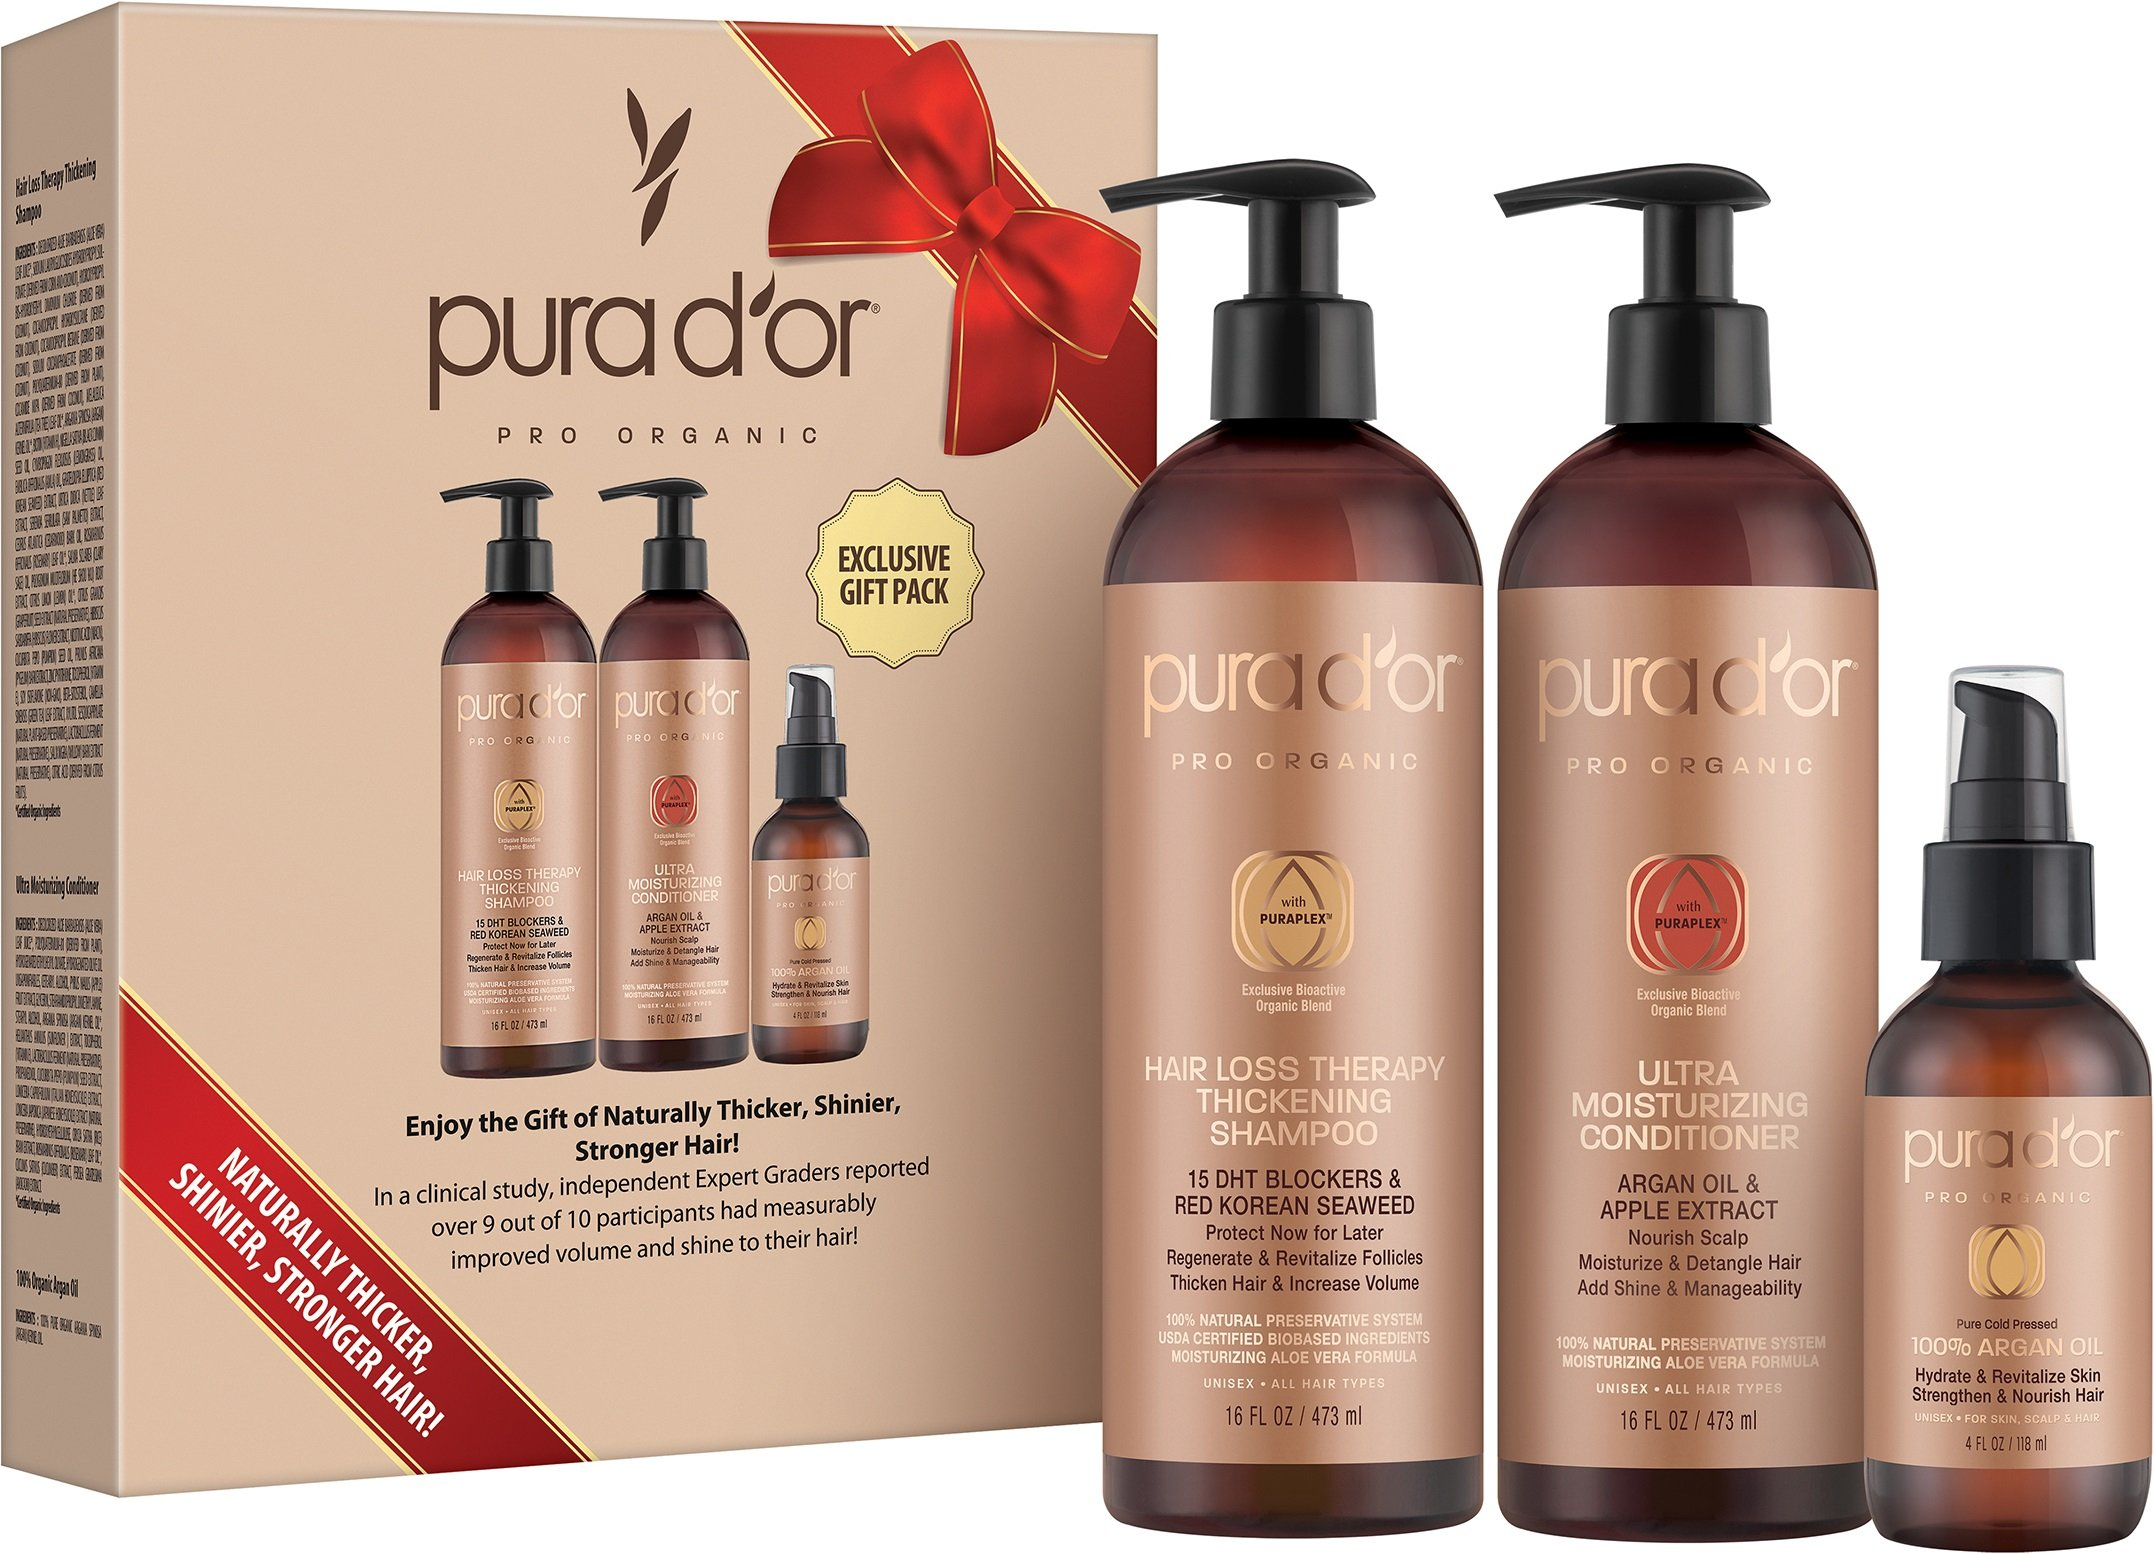 PURA D'OR Clinically Tested Professional Grade Hair Loss Therapy Thickening Shampoo & Conditioner 2X CONCENTRATED, Gift Set Includes FREE BONUS 4oz Organic Argan Oil